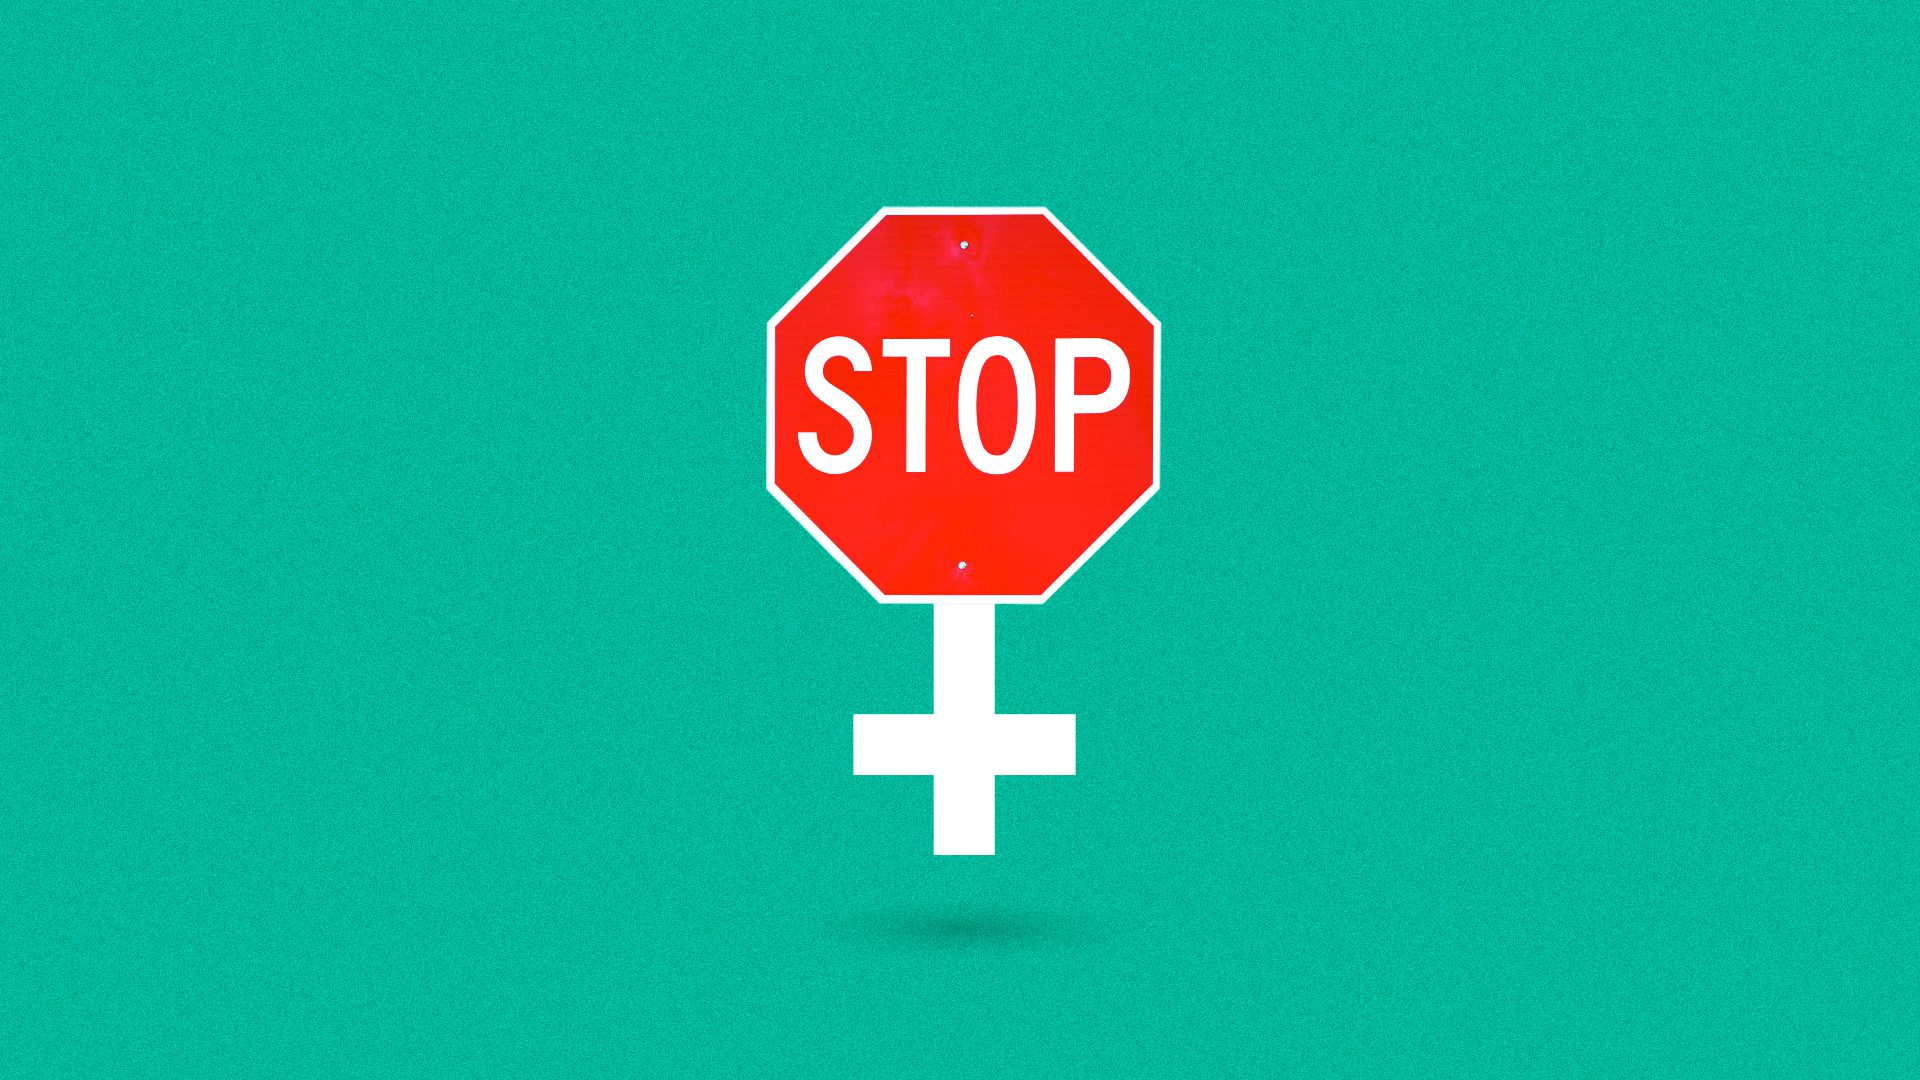 Illustration of a stop sign as the circle part of the female symbol.